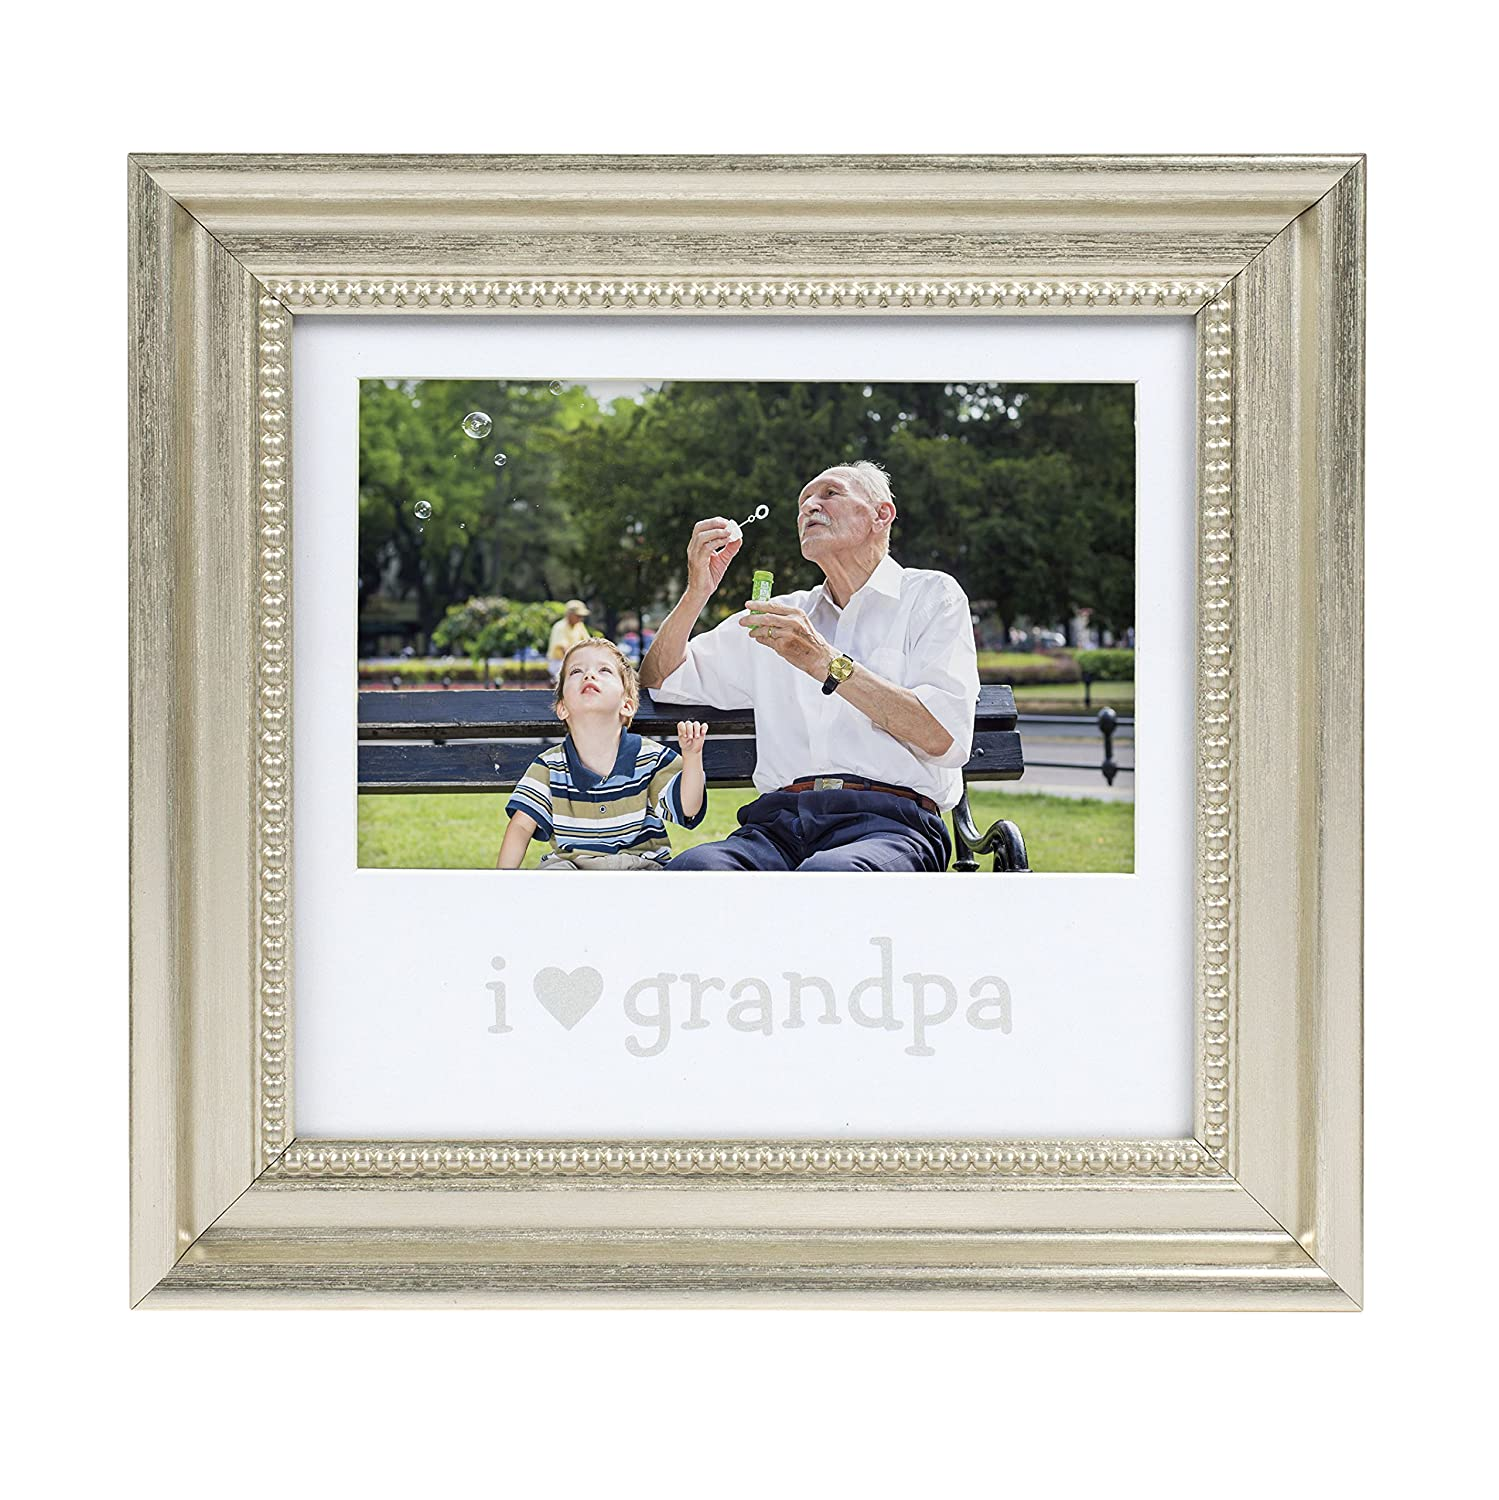 Lil Peach I Love Grandma Keepsake Sentiment Photo Frame Displays One 4 x 6 Picture, Silver Pearhead 93046